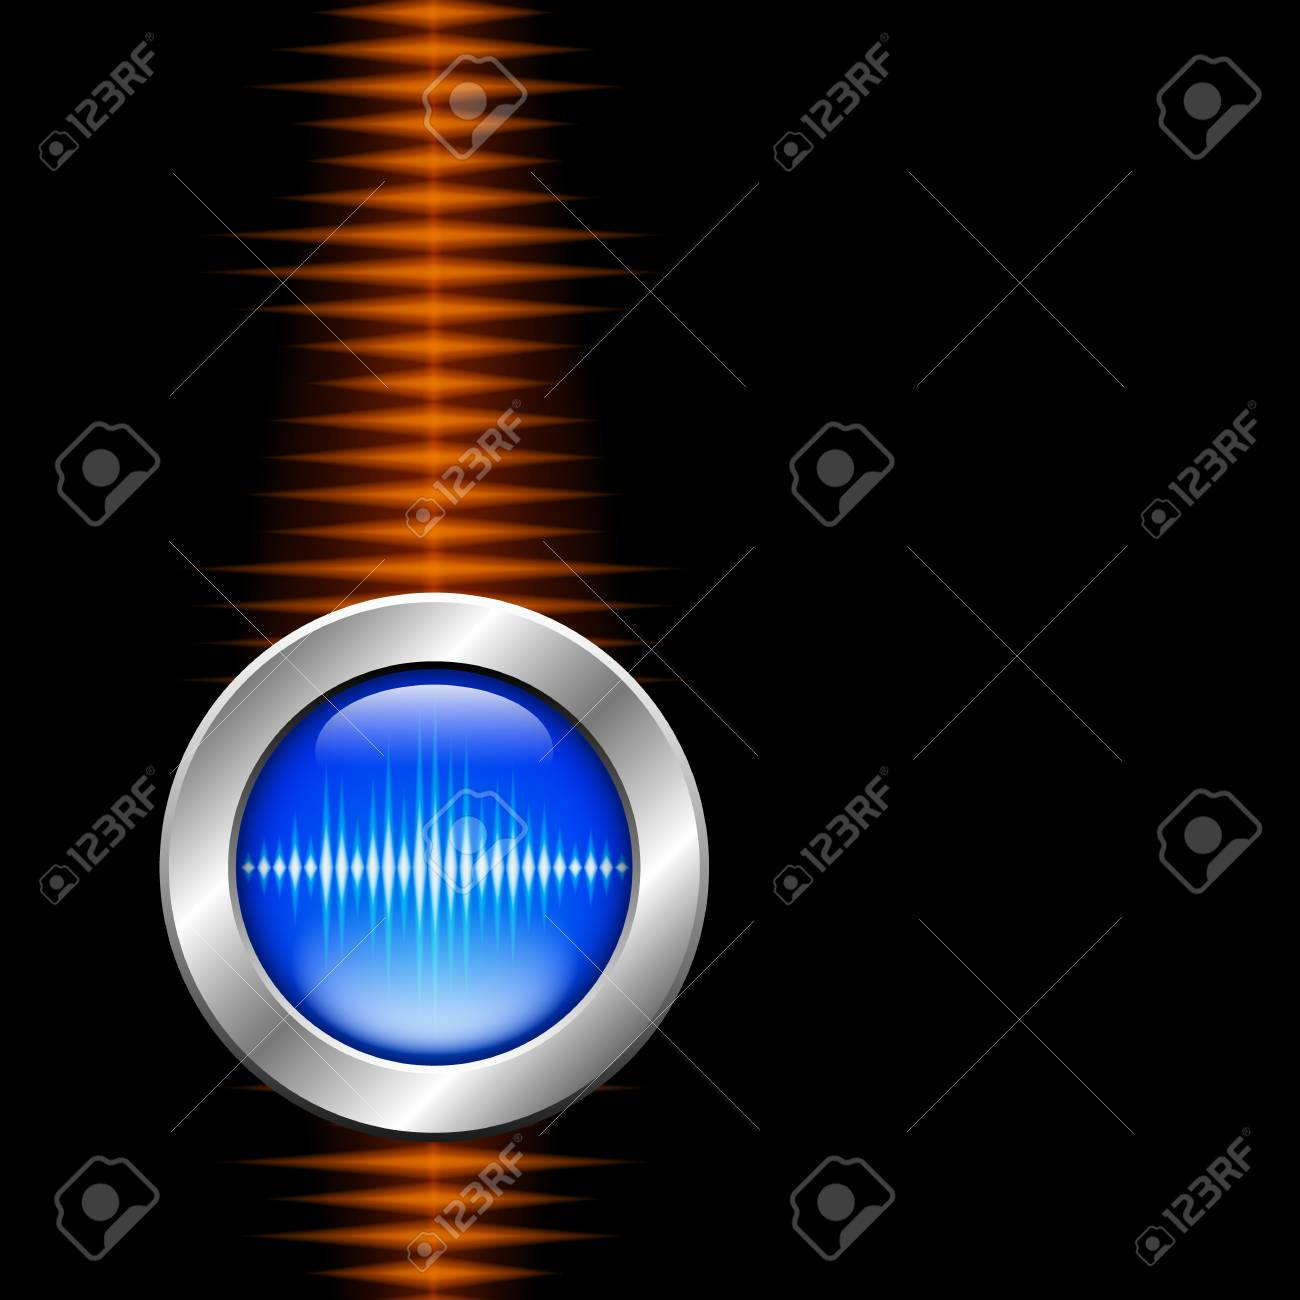 Silver button with sound or music waveform and orange wave